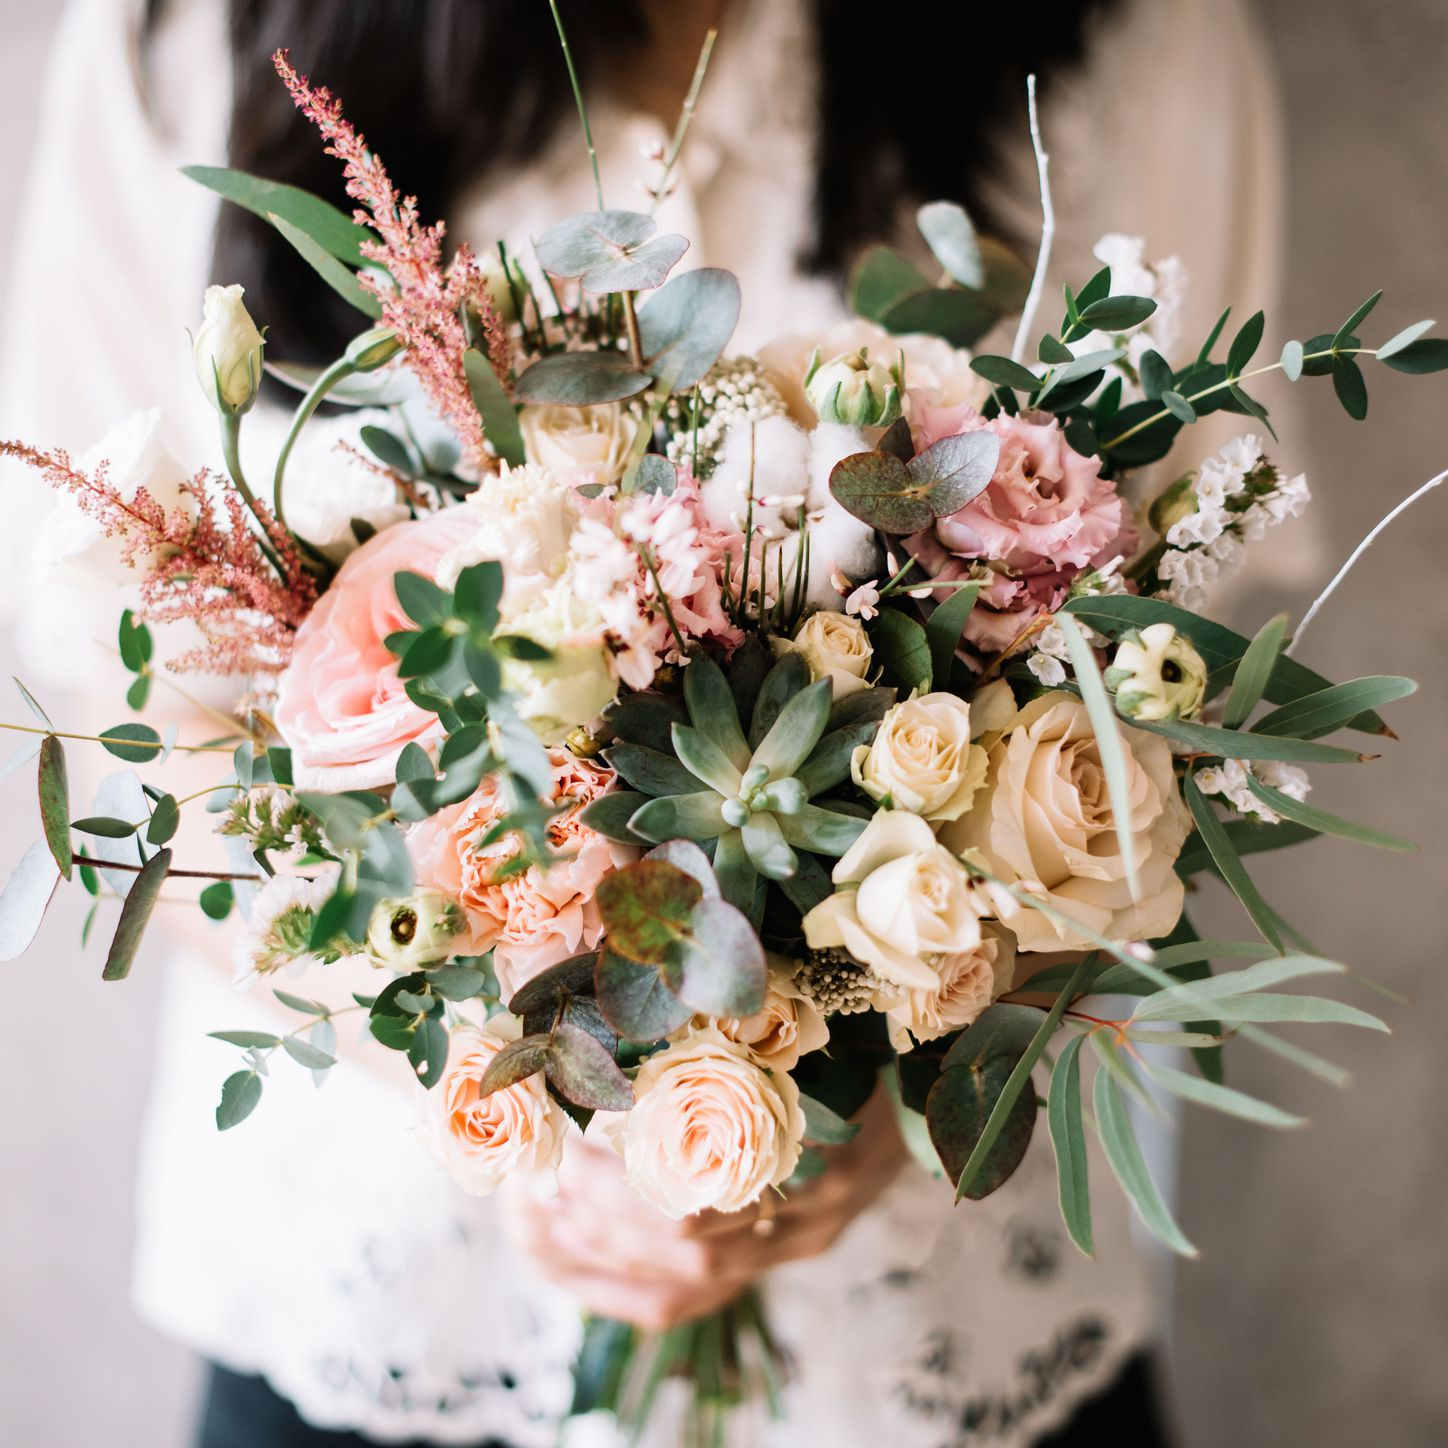 Wedding Flower Availability And Colors By Season